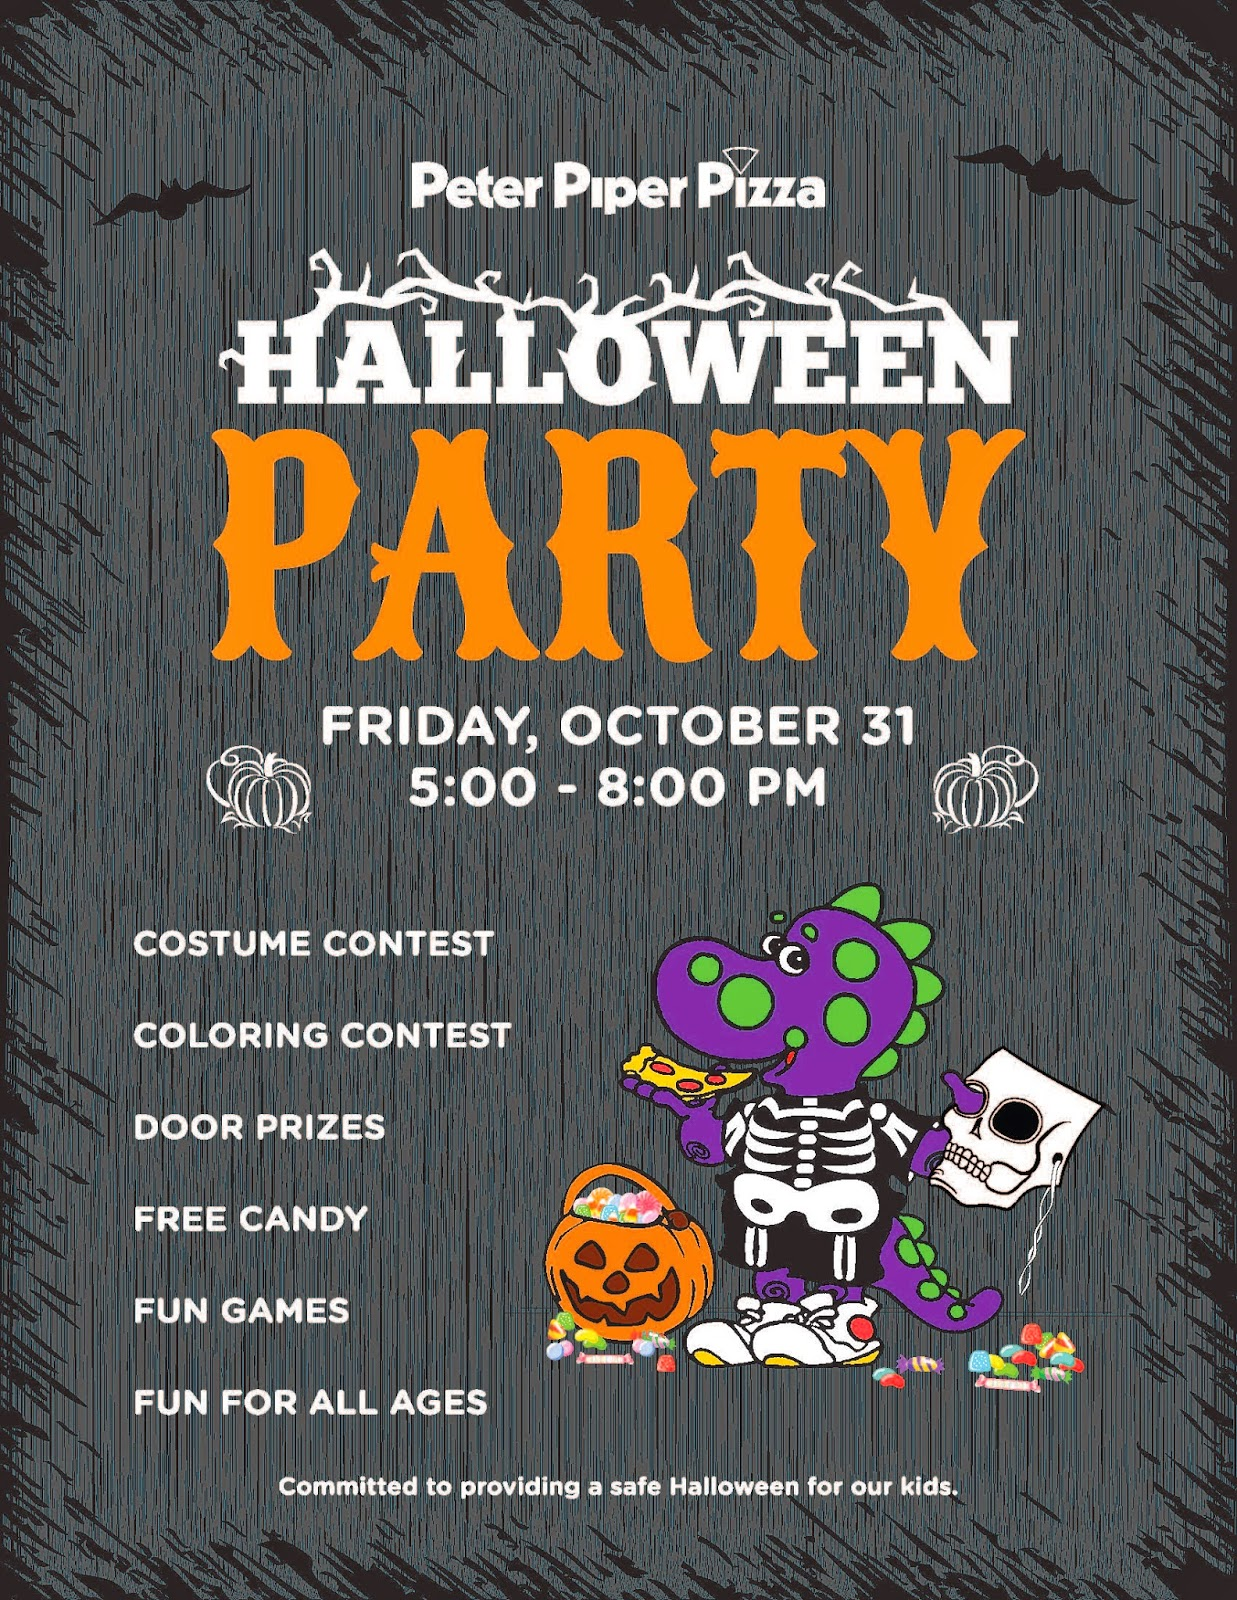 CC Fun For Kids 2014 Fall Festivals, Pumpkin Patches, and ...